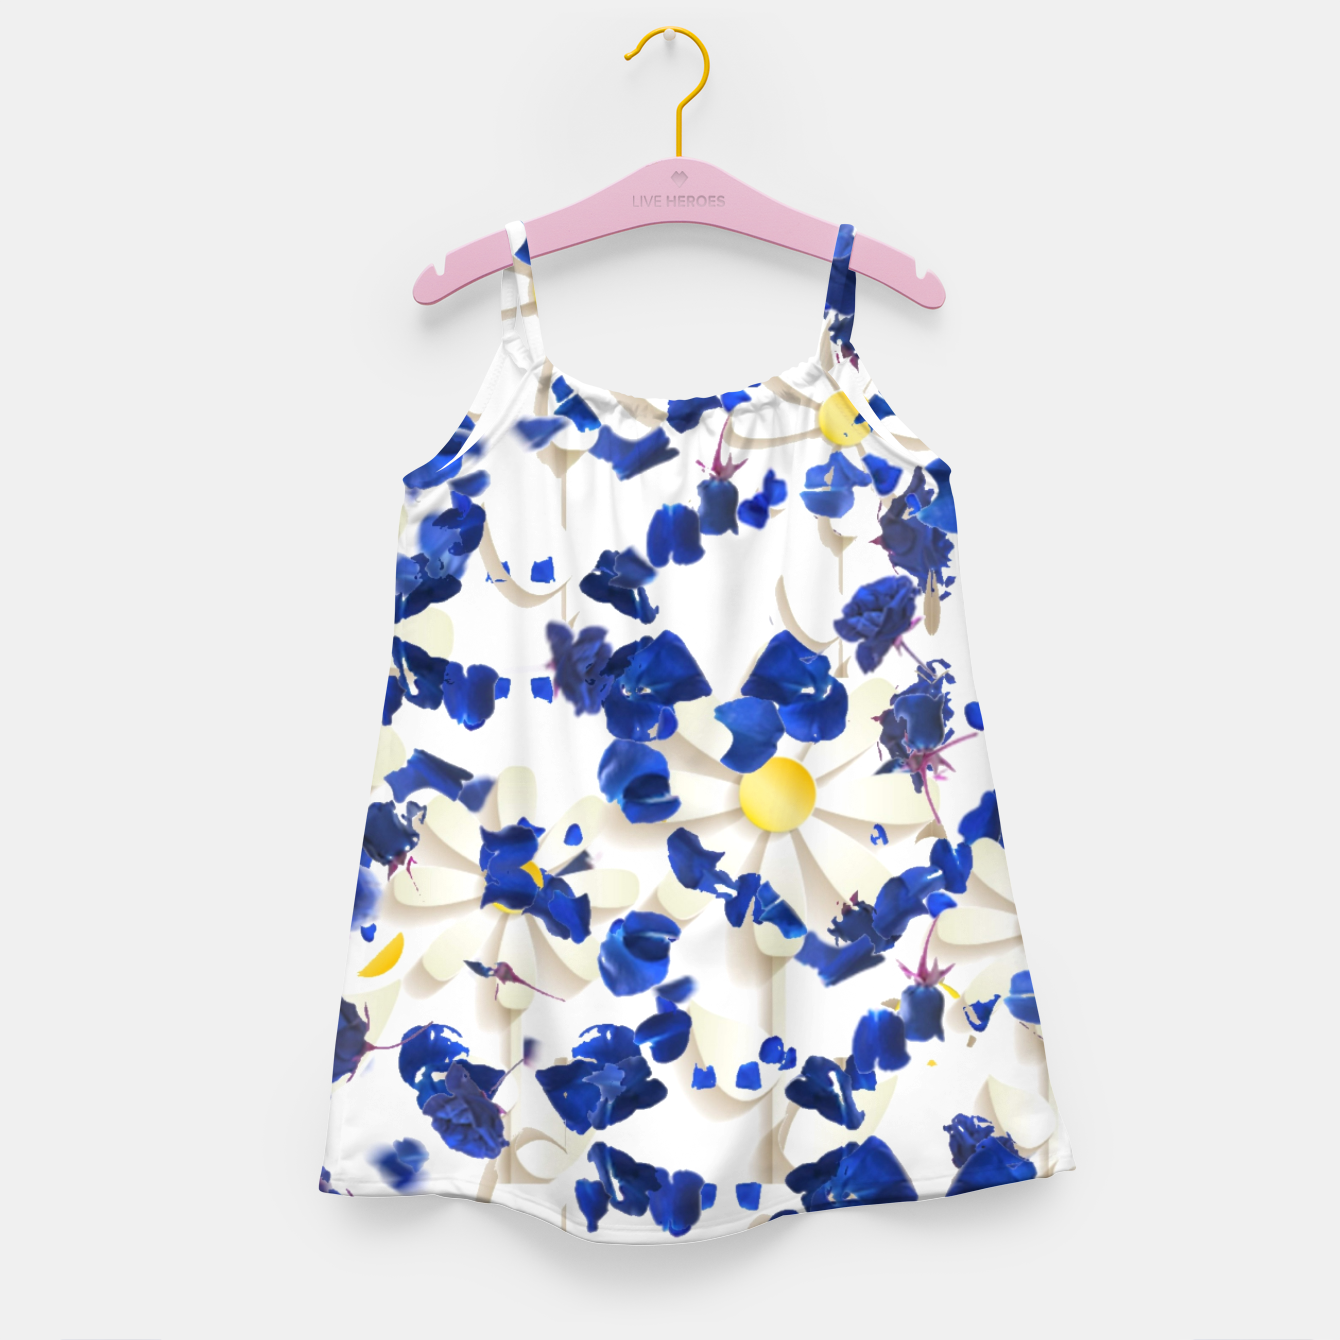 Foto white daisies and blue cyclamens floral pattern Girl's dress - Live Heroes